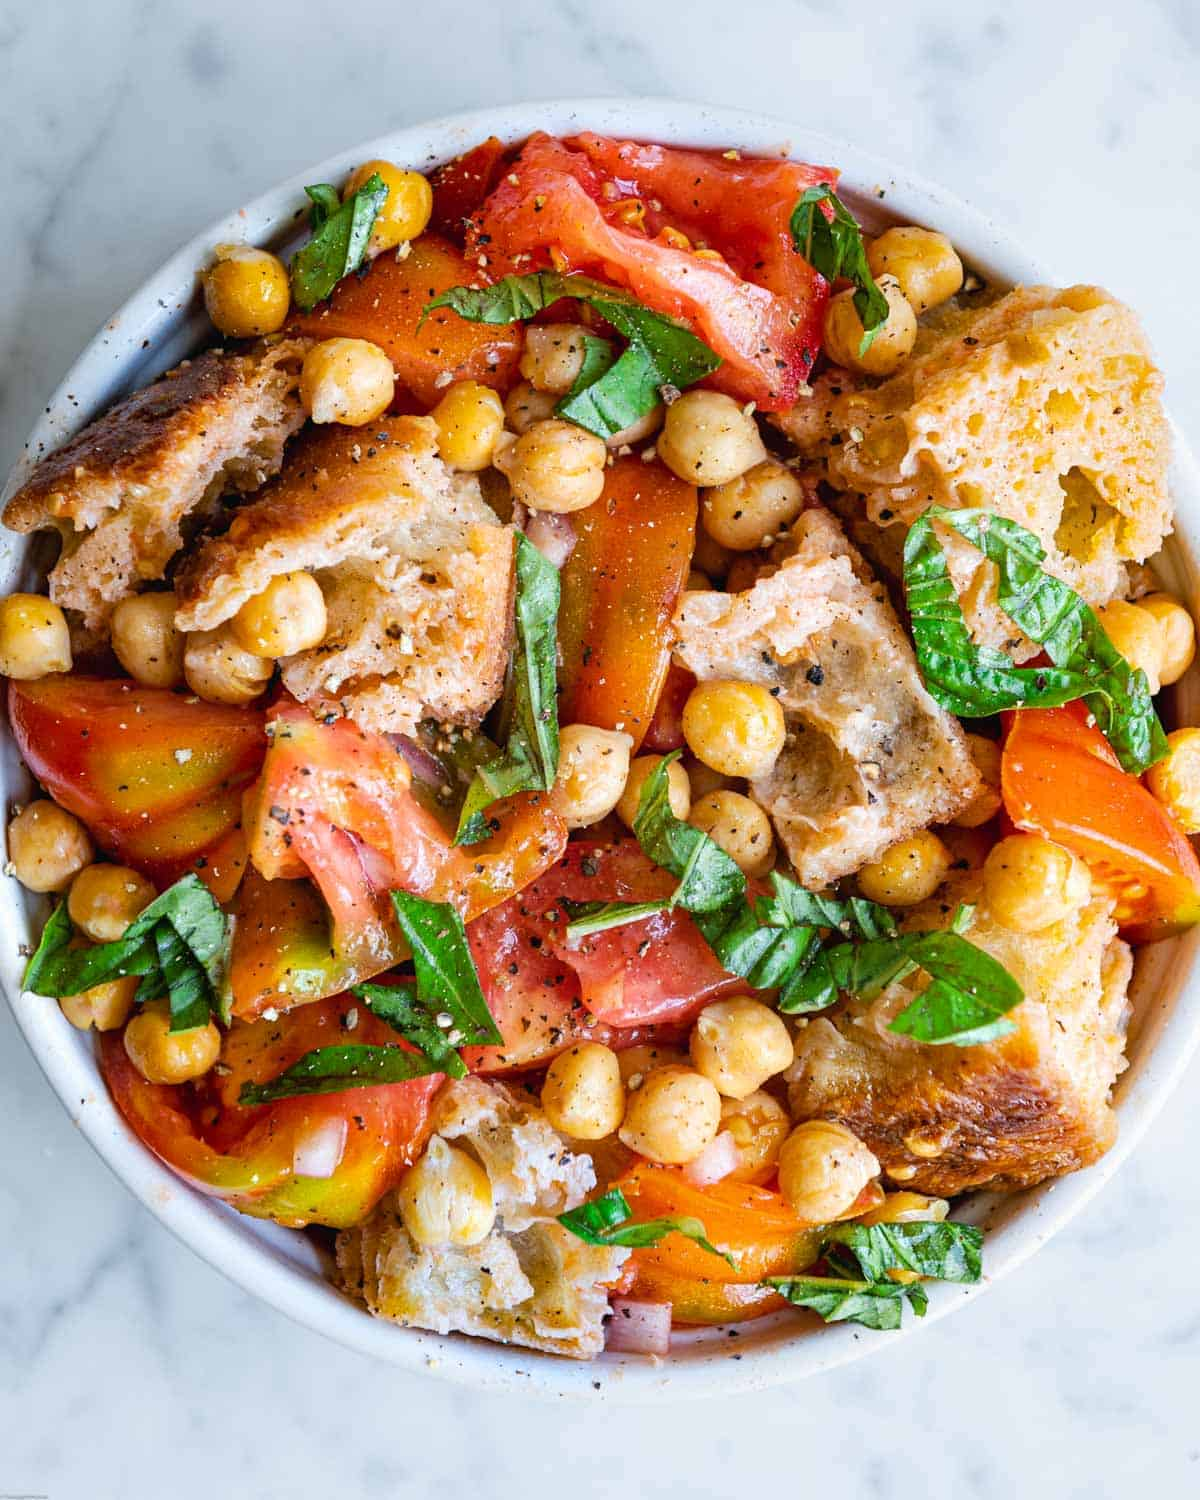 Panzanella salad with roasted chickpeas, bread, tomatoes, fresh basil and olive oil dressing.